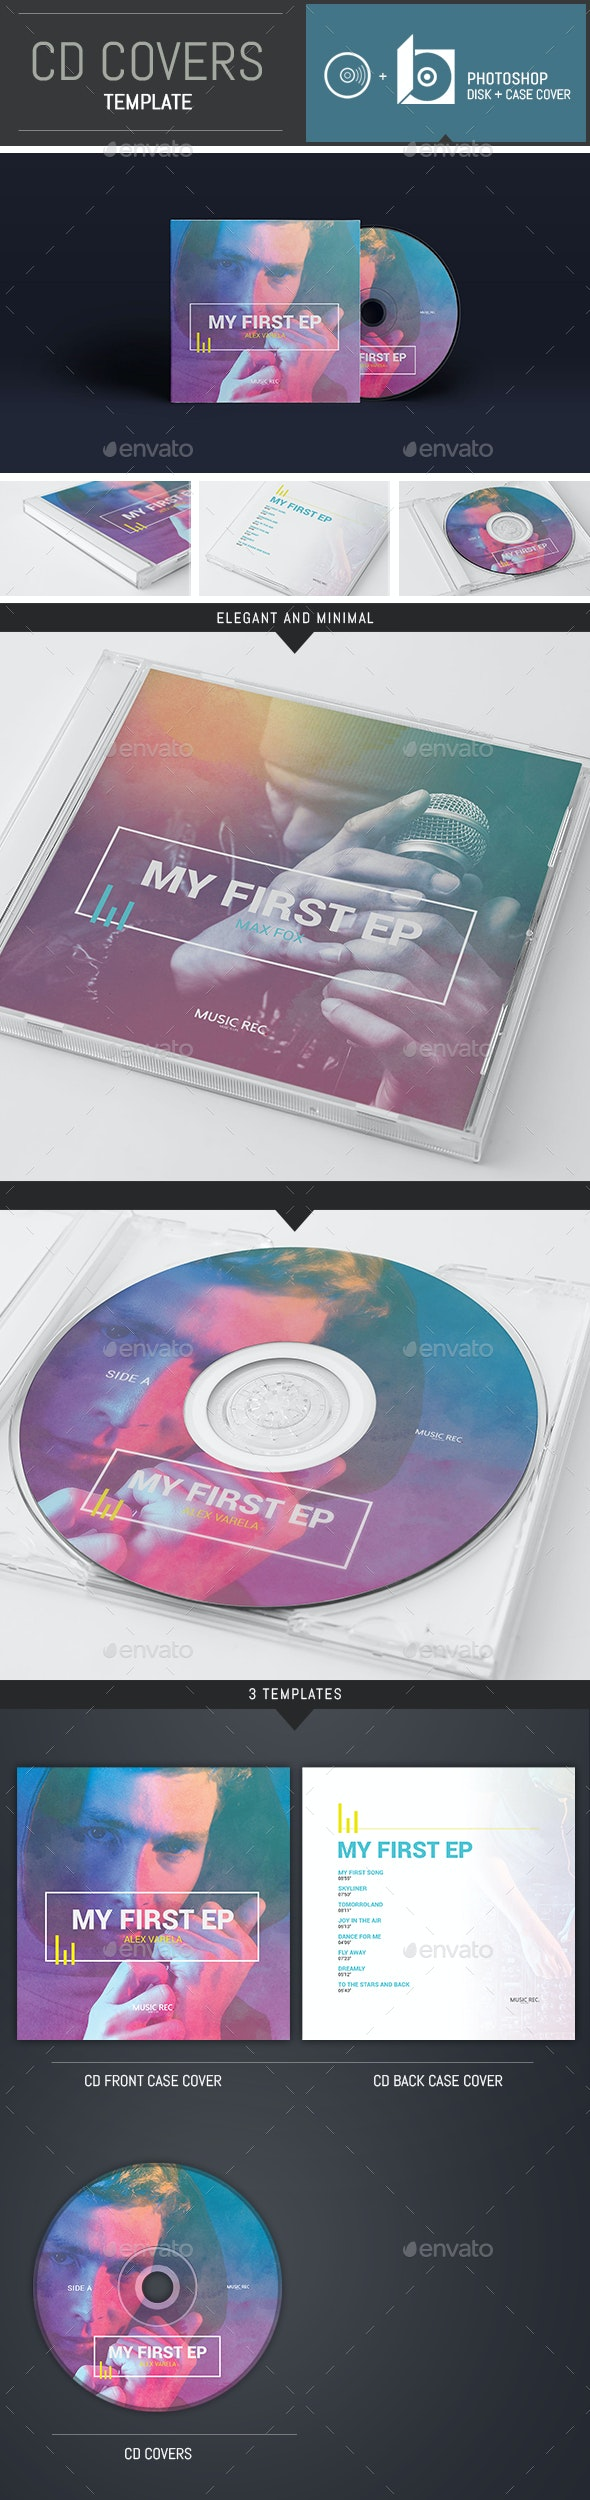 DJ / Musician / Band CD Cover Template - CD & DVD Artwork Print Templates